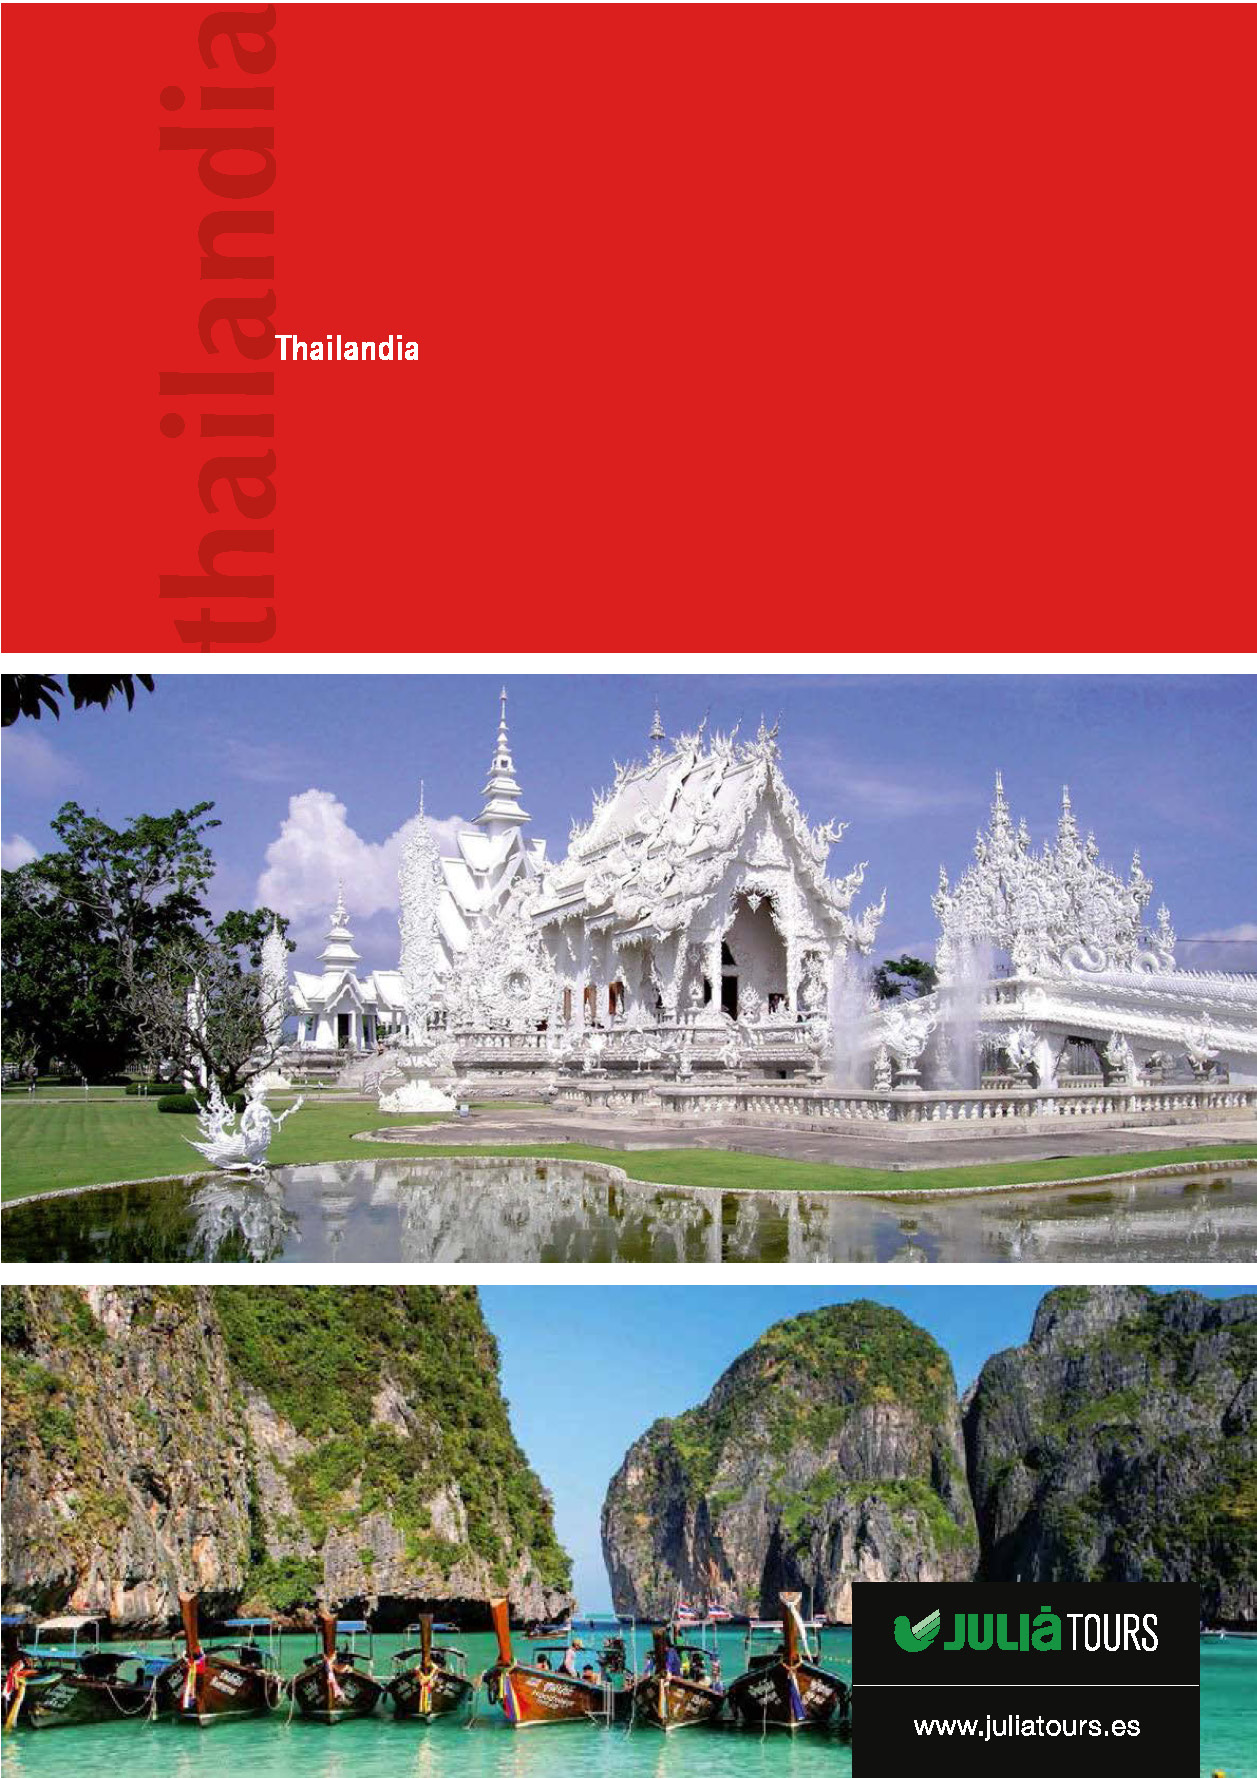 Catalogo Julia Tours Thailandia 2017-2018